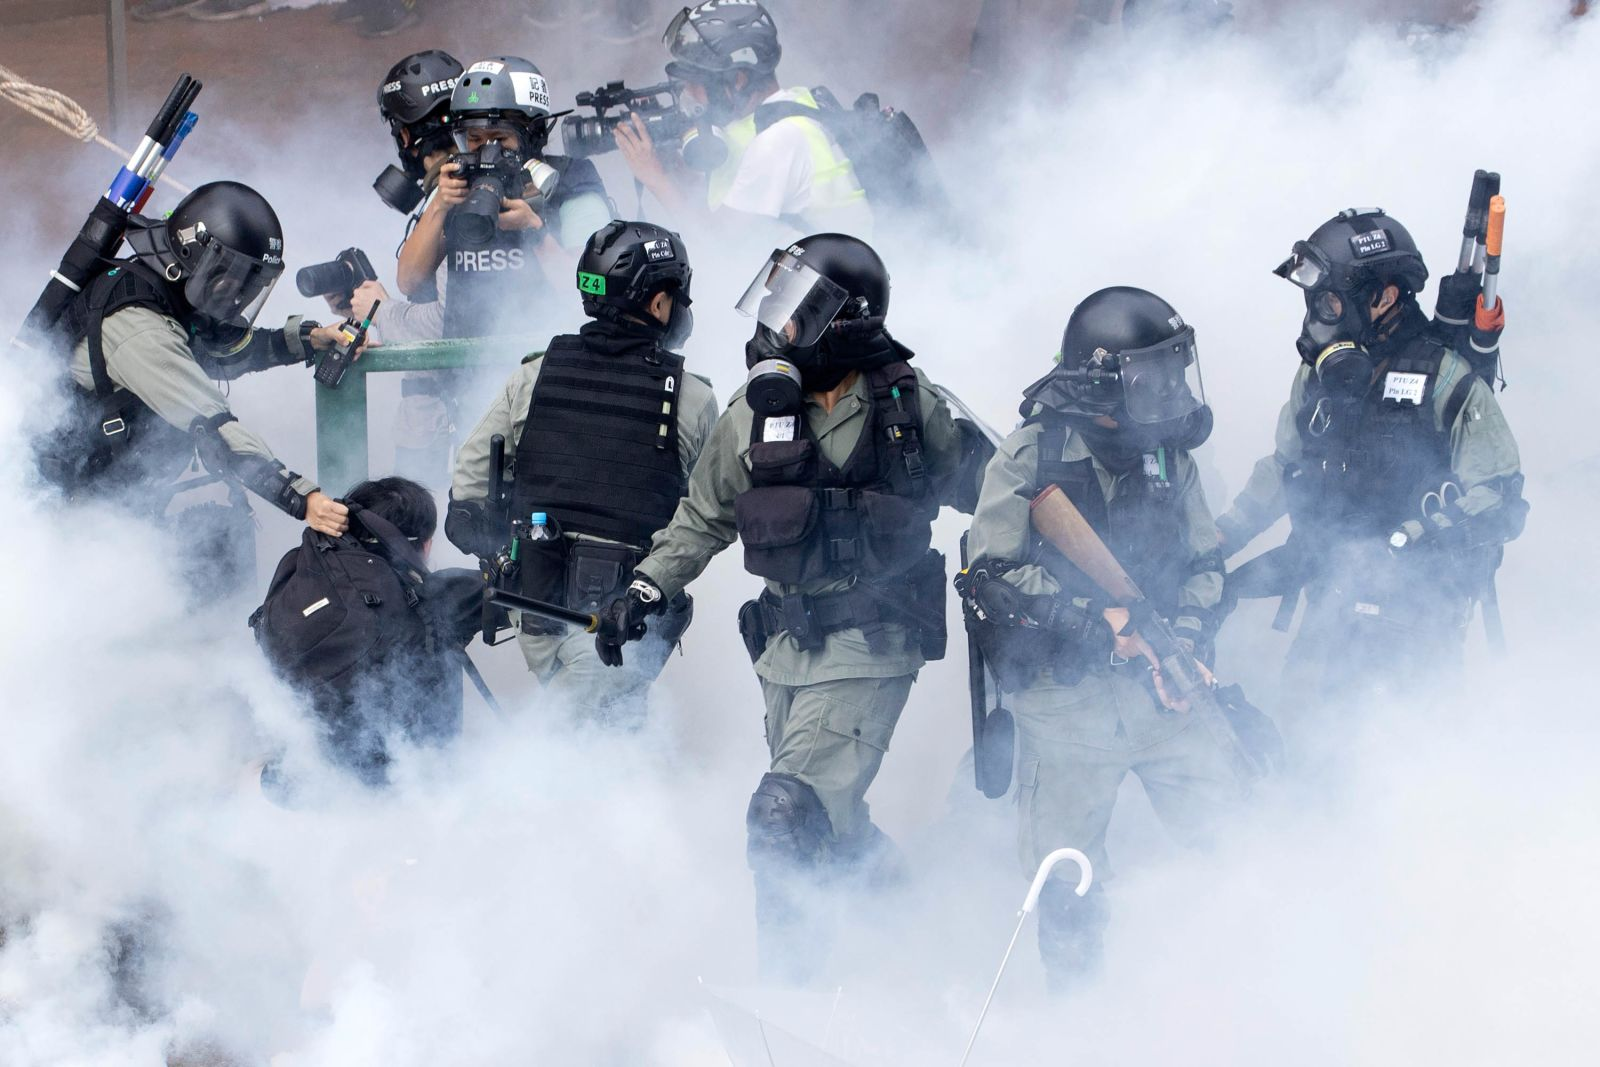 In pictures: Hong Kong unrest